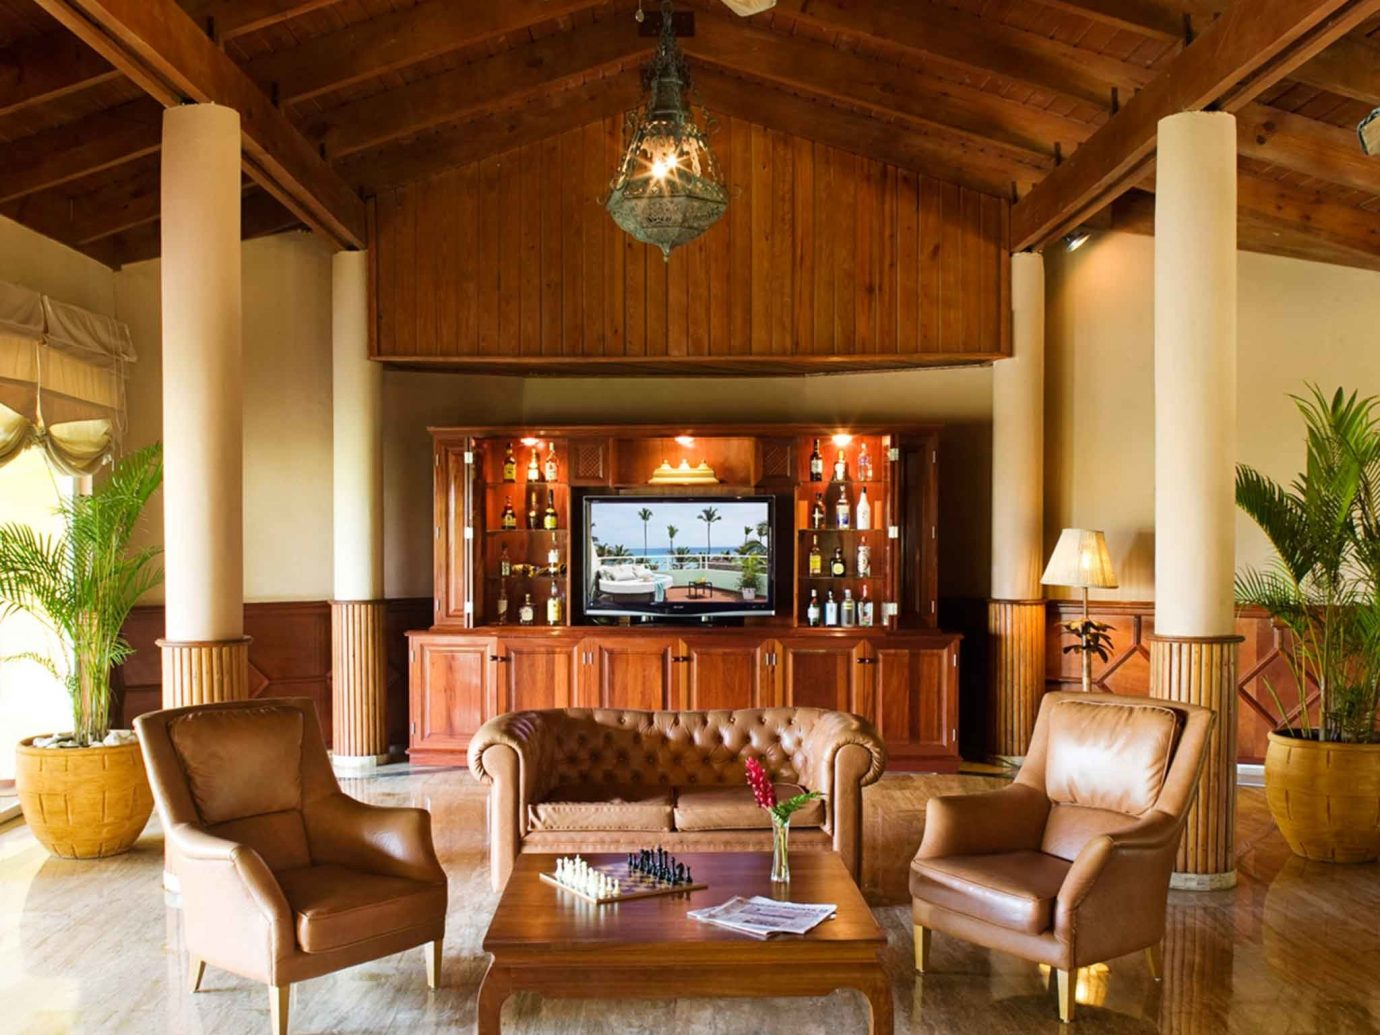 All-Inclusive Resorts Classic Hotels Living Lounge Luxury Romance Scenic views floor indoor room table living room ceiling property estate home hardwood interior design porch wood real estate dining room wood flooring furniture farmhouse mansion cottage area dining table